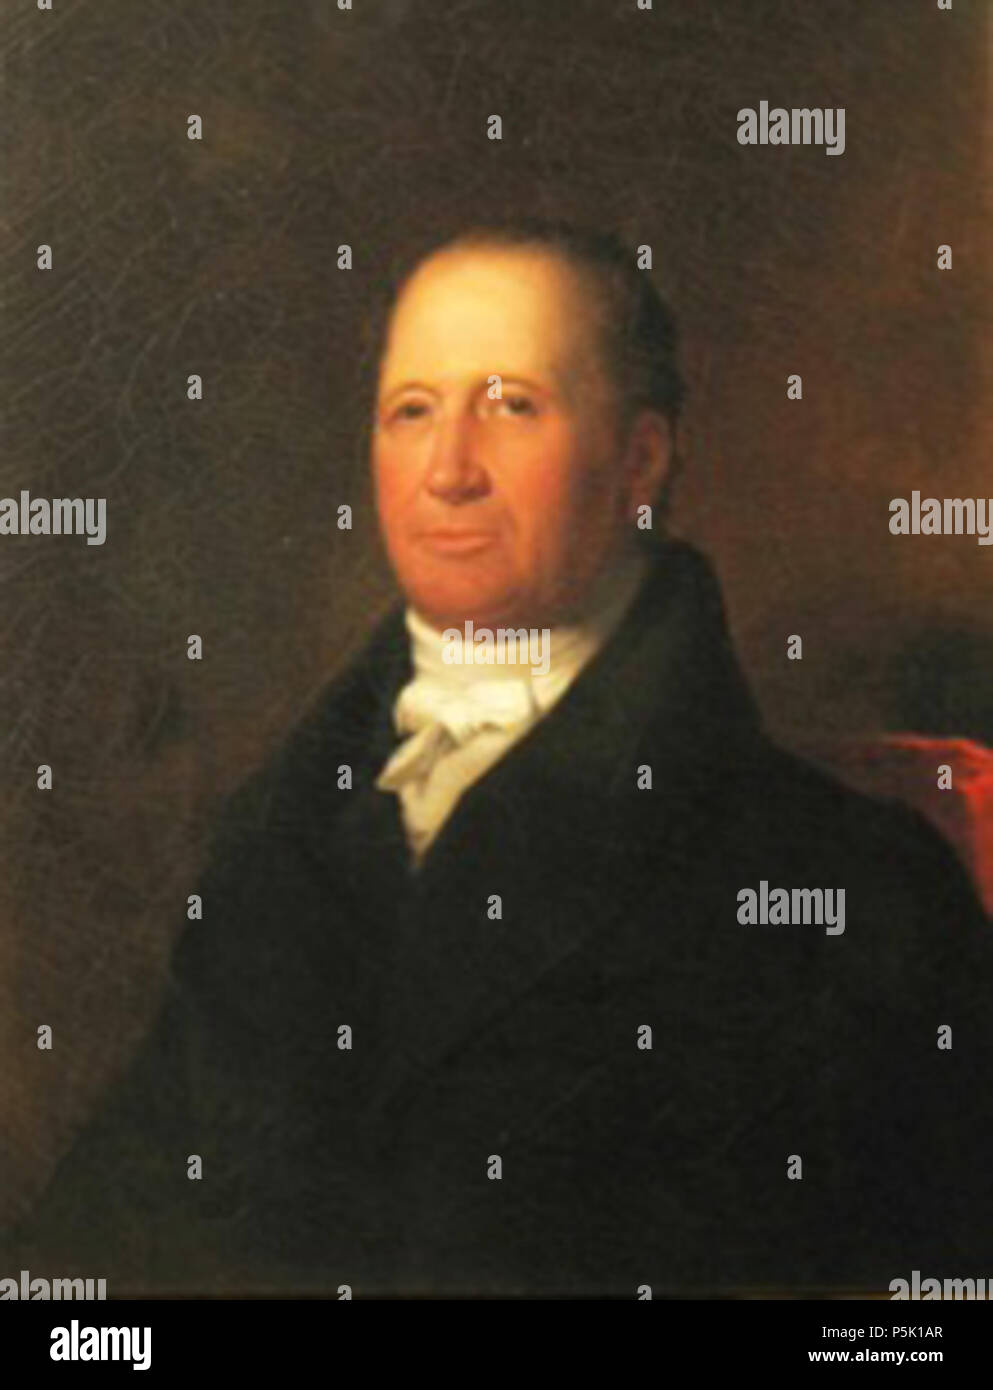 N/A. Portrait of 'Chancellor Theodorick Bland (1776-1846)'     John Wesley Jarvis  (1781–1839)     Alternative names John Jarvis; Jarvis  Description American portrait painter  Date of birth/death 1780 1840  Location of birth/death South Shields New York City  Authority control  : Q3182713 VIAF:30715649 ISNI:0000 0001 1755 3494 ULAN:500008614 LCCN:nr92020585 GND:133033295 WorldCat 324 Chancellor Theodorick Bland - Stock Image